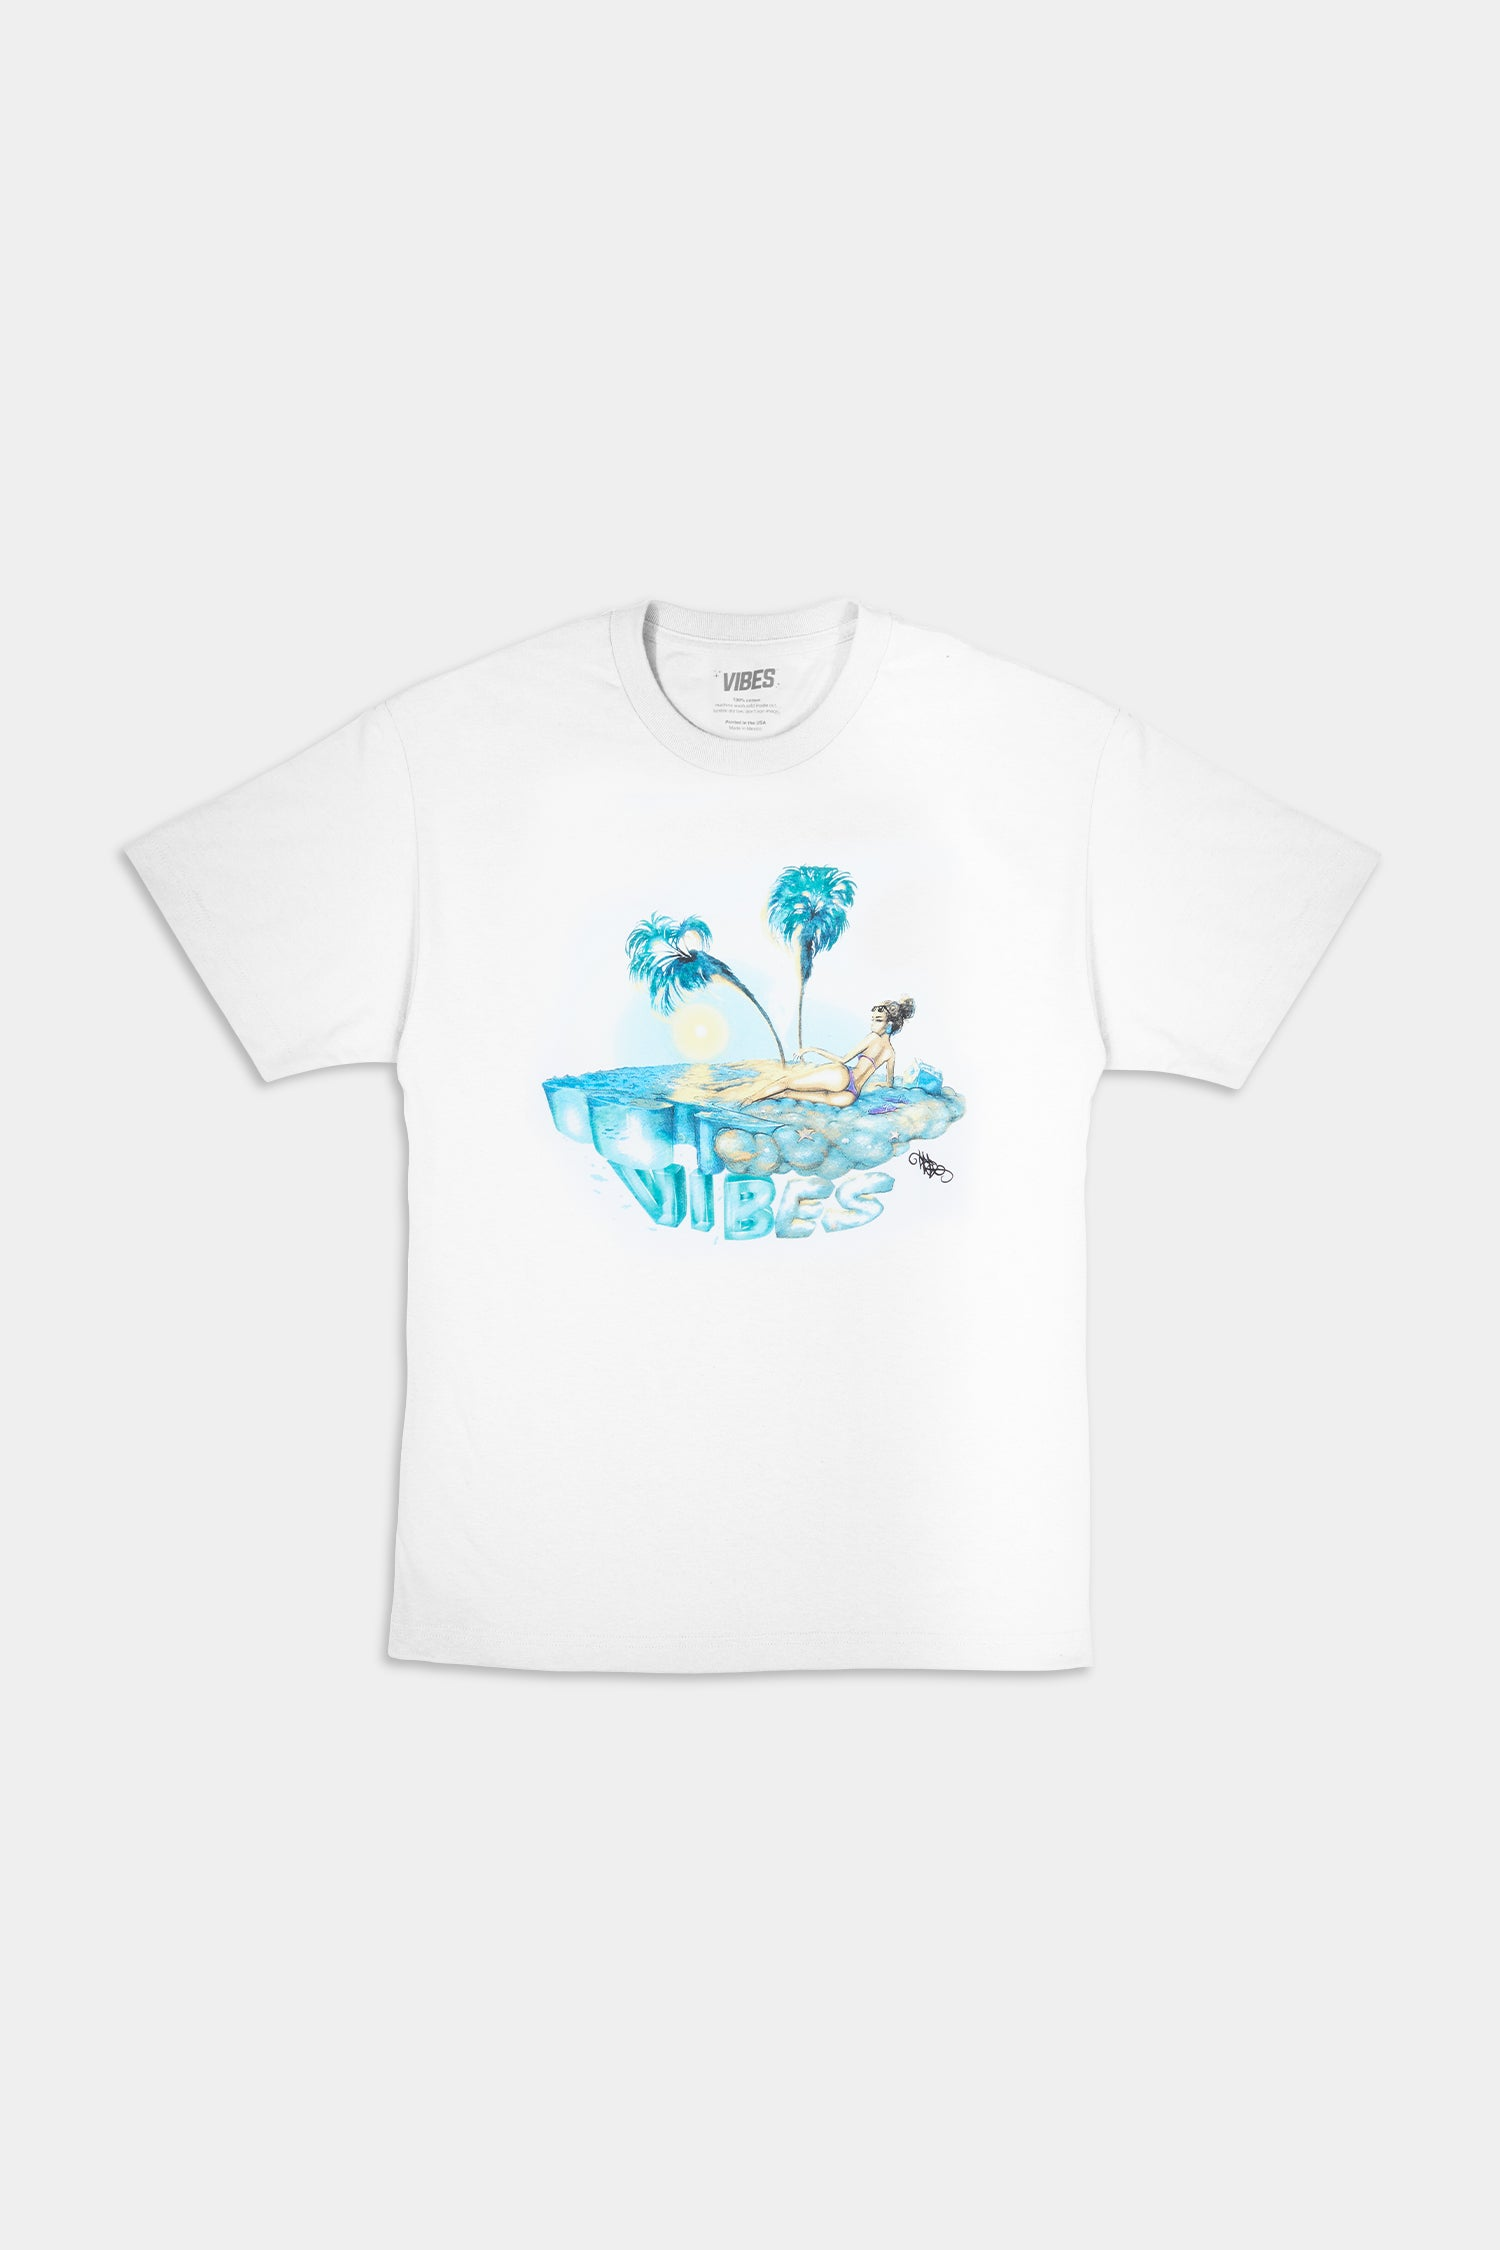 VIBES Private Island Collection White T-Shirt